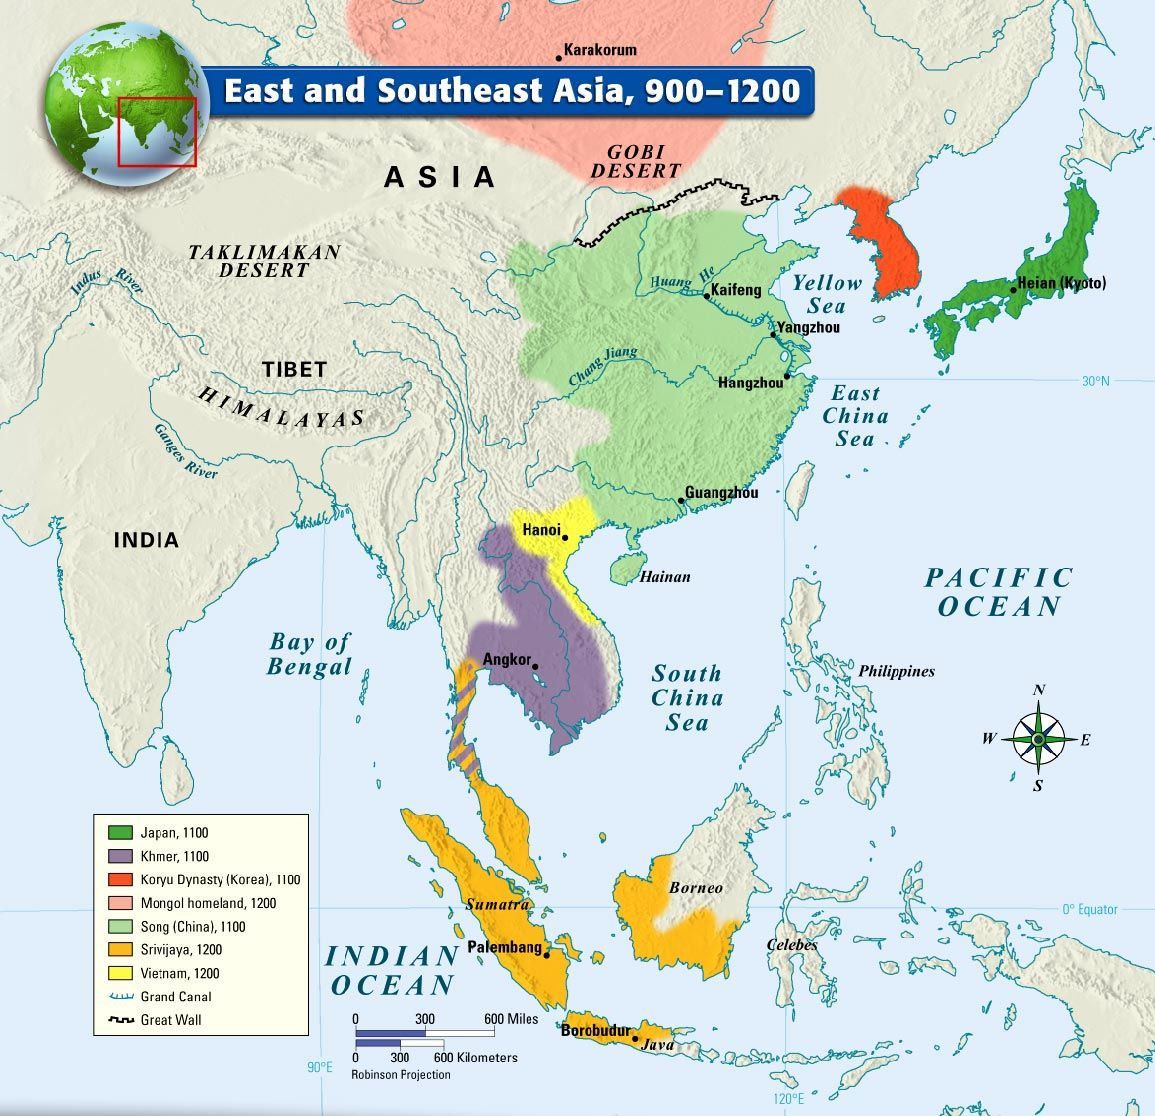 Carte Asie Moyen Age.East And Southeast Asia 900 1200 Moyen Age Carte Asie